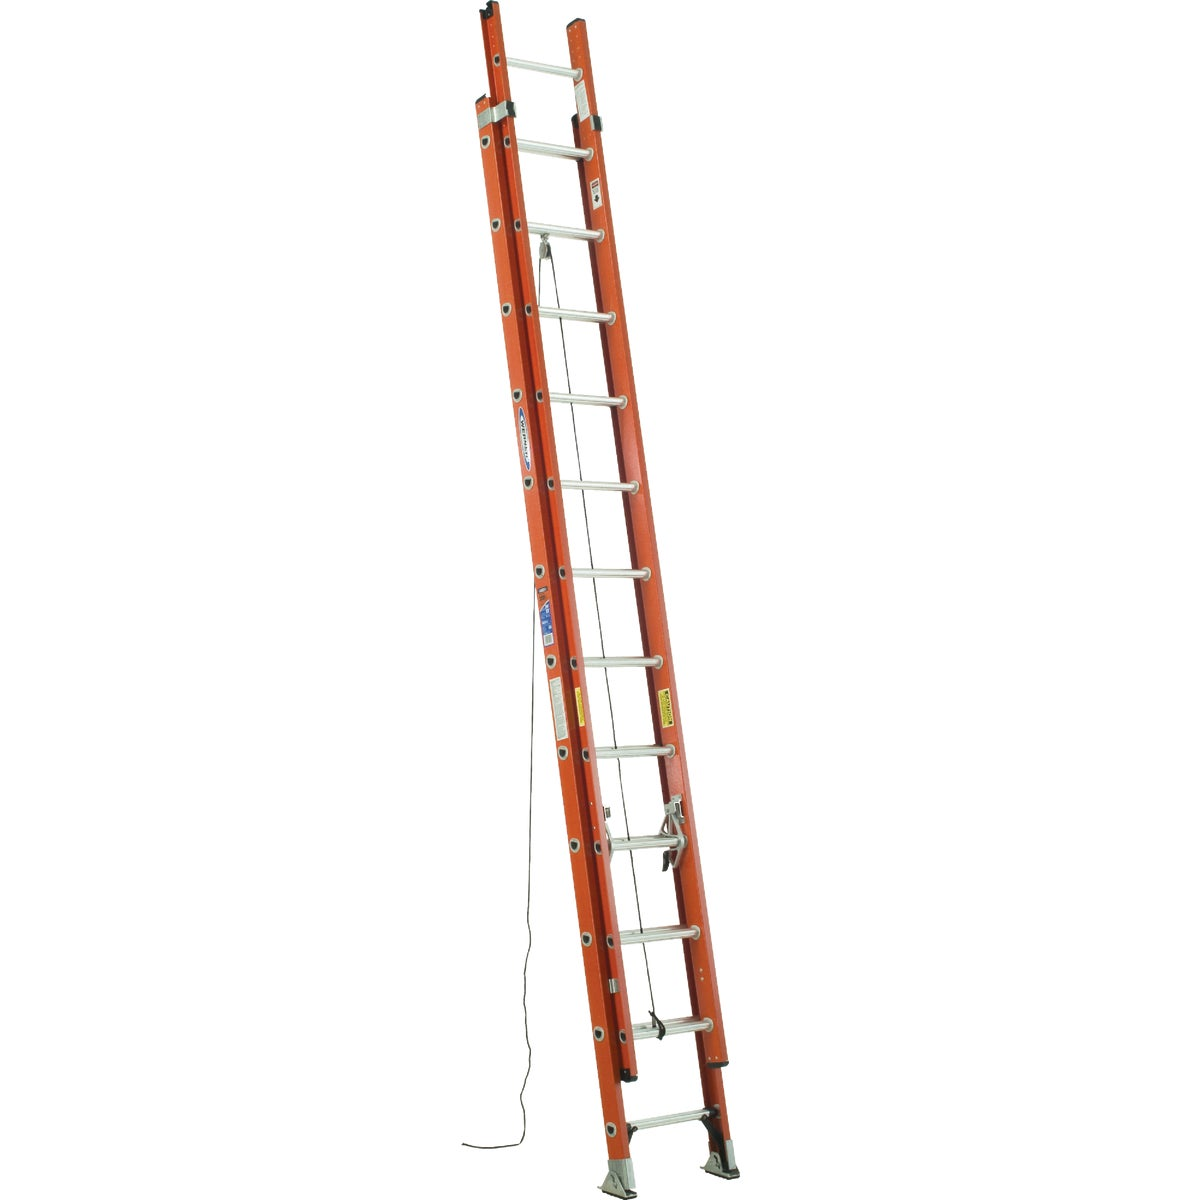 T-1A 24' FBGL EXT LADDER